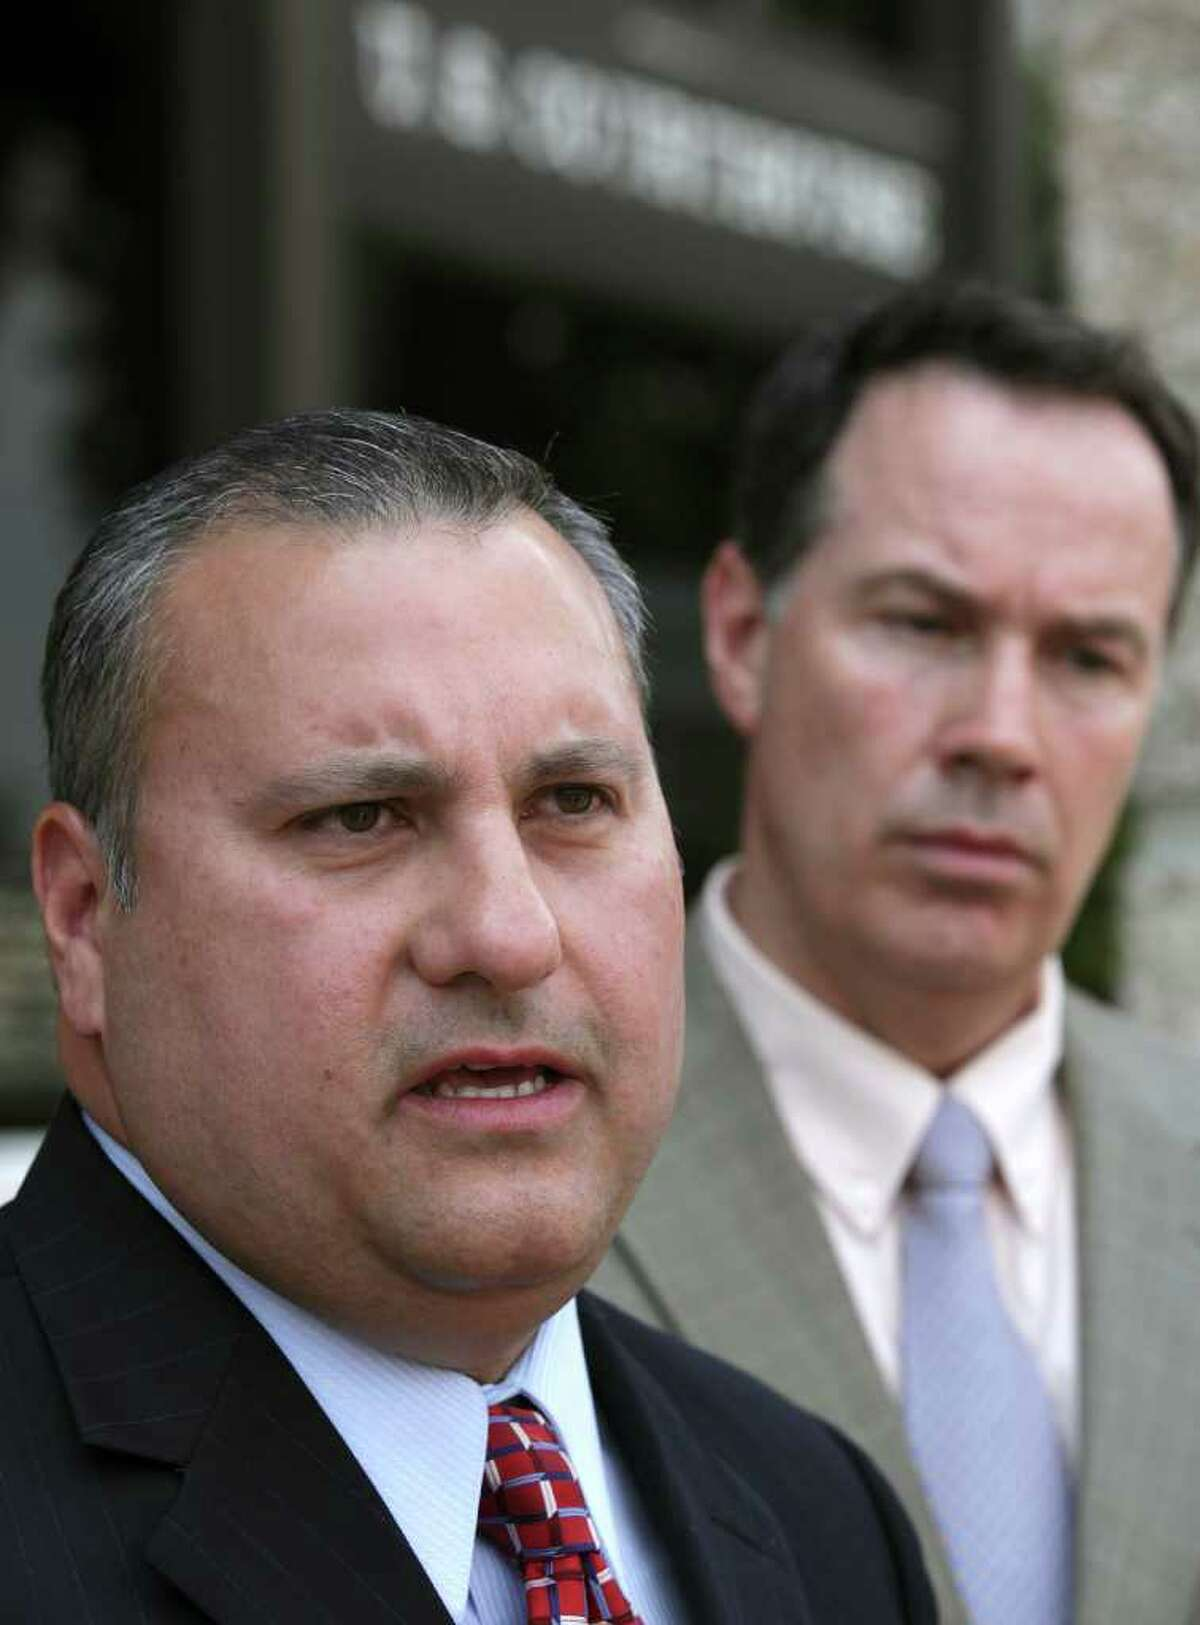 Chris Martinez, Assistant Superintendent Human Resources and Public Relations for Medina Valley ISD, speaks to the media following a hearing concerning the use of prayer in the Medina Valley High School's graduation ceremonies this Saturday. At right is the district's attorney, D. Craig Wood. Tuesday, May 31, 2011. Photo Bob Owen/rowen@express-news.net